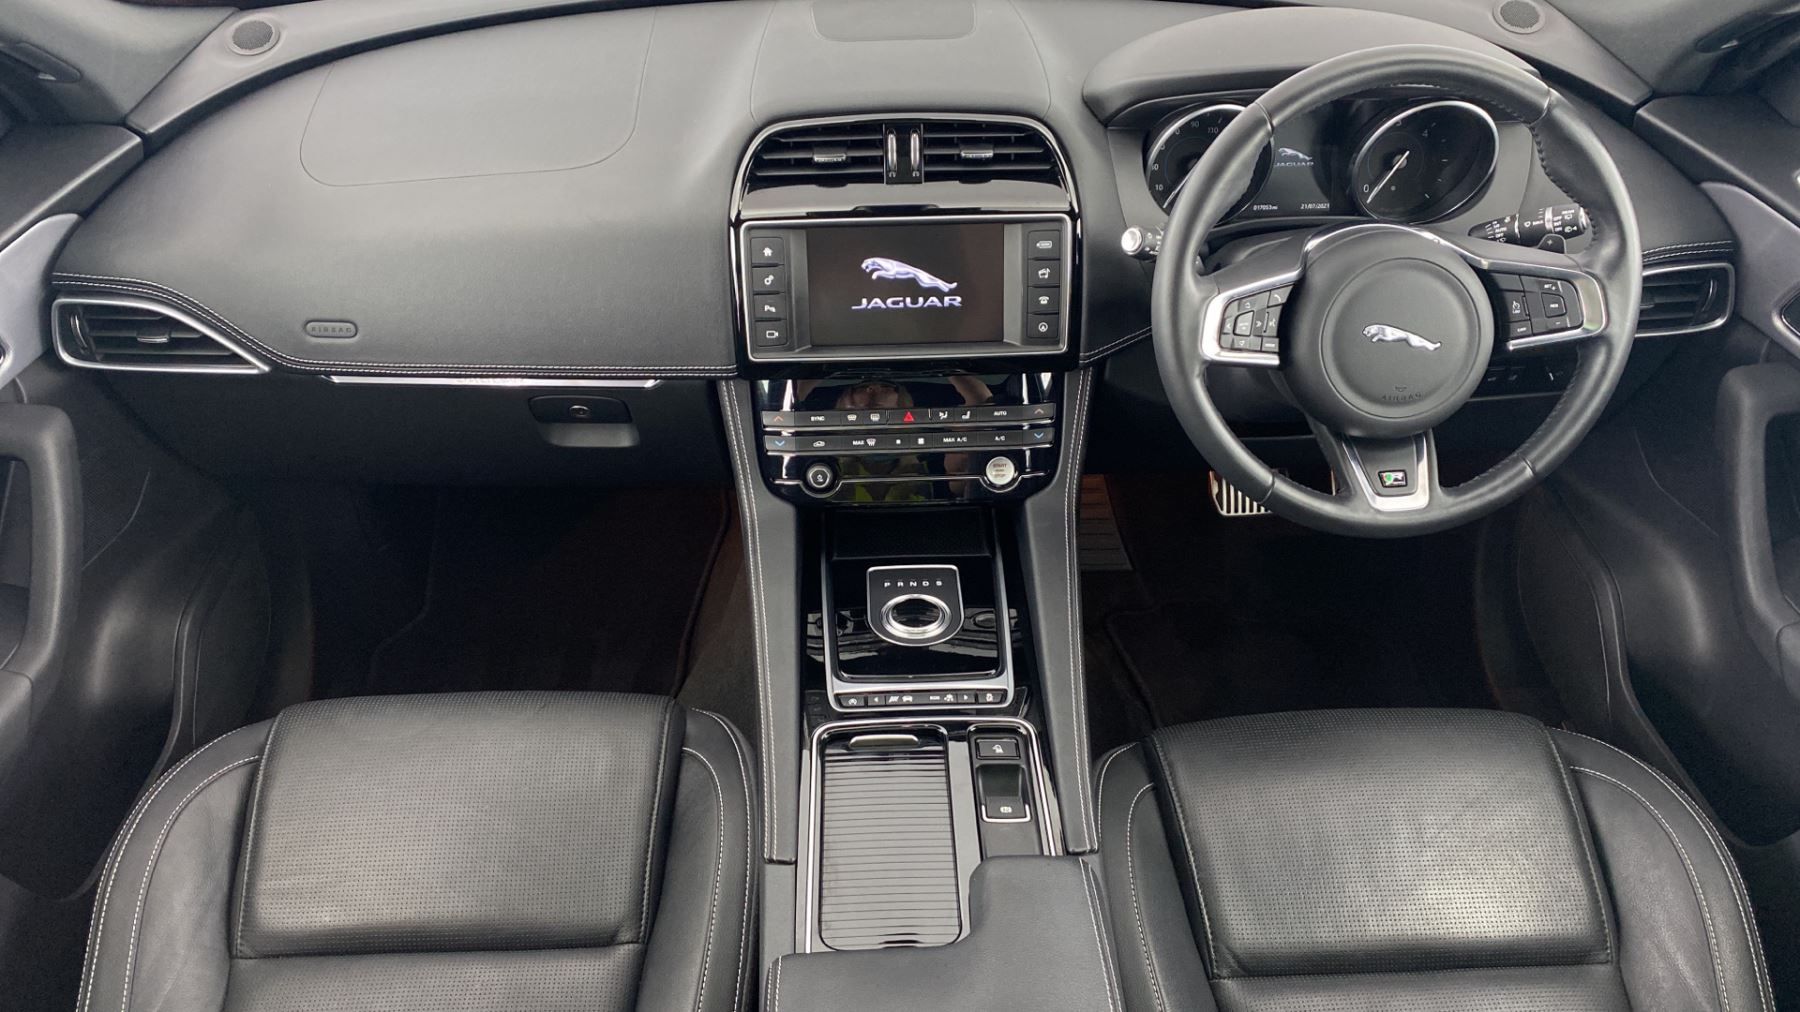 Jaguar F-PACE 2.0d R-Sport AWD - Sliding Panoramic Roof - Rear View Camera image 11